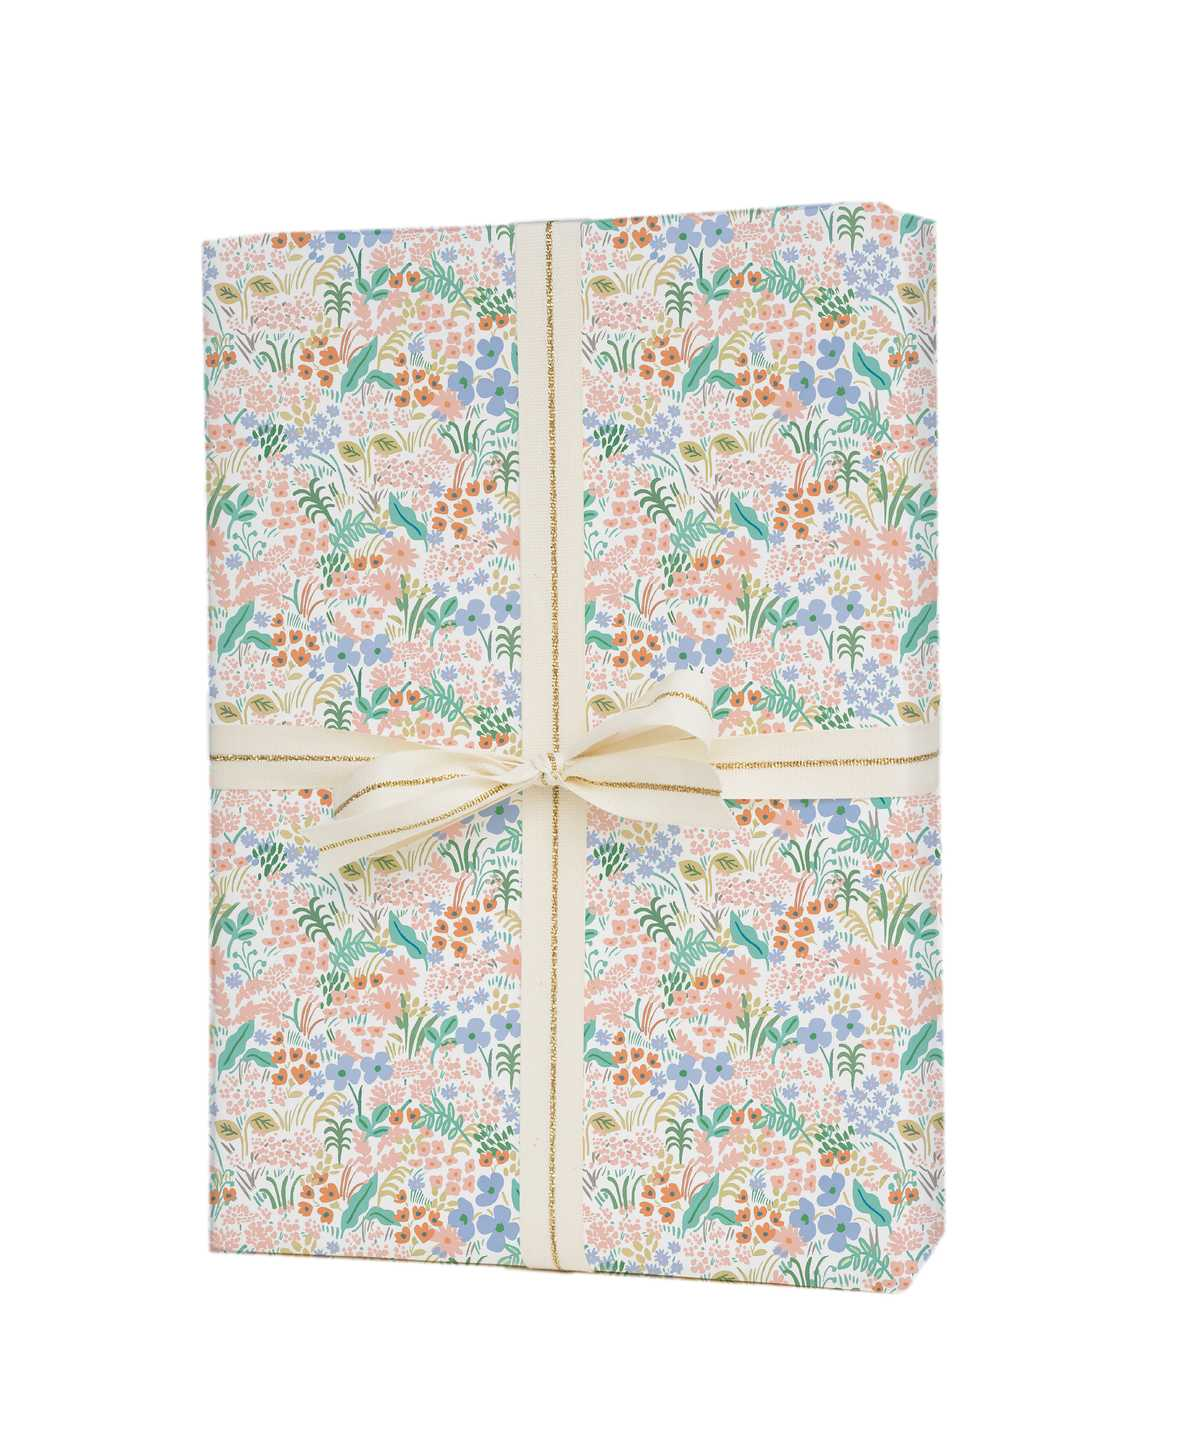 RIFLE - Meadow pastel wrapping paper